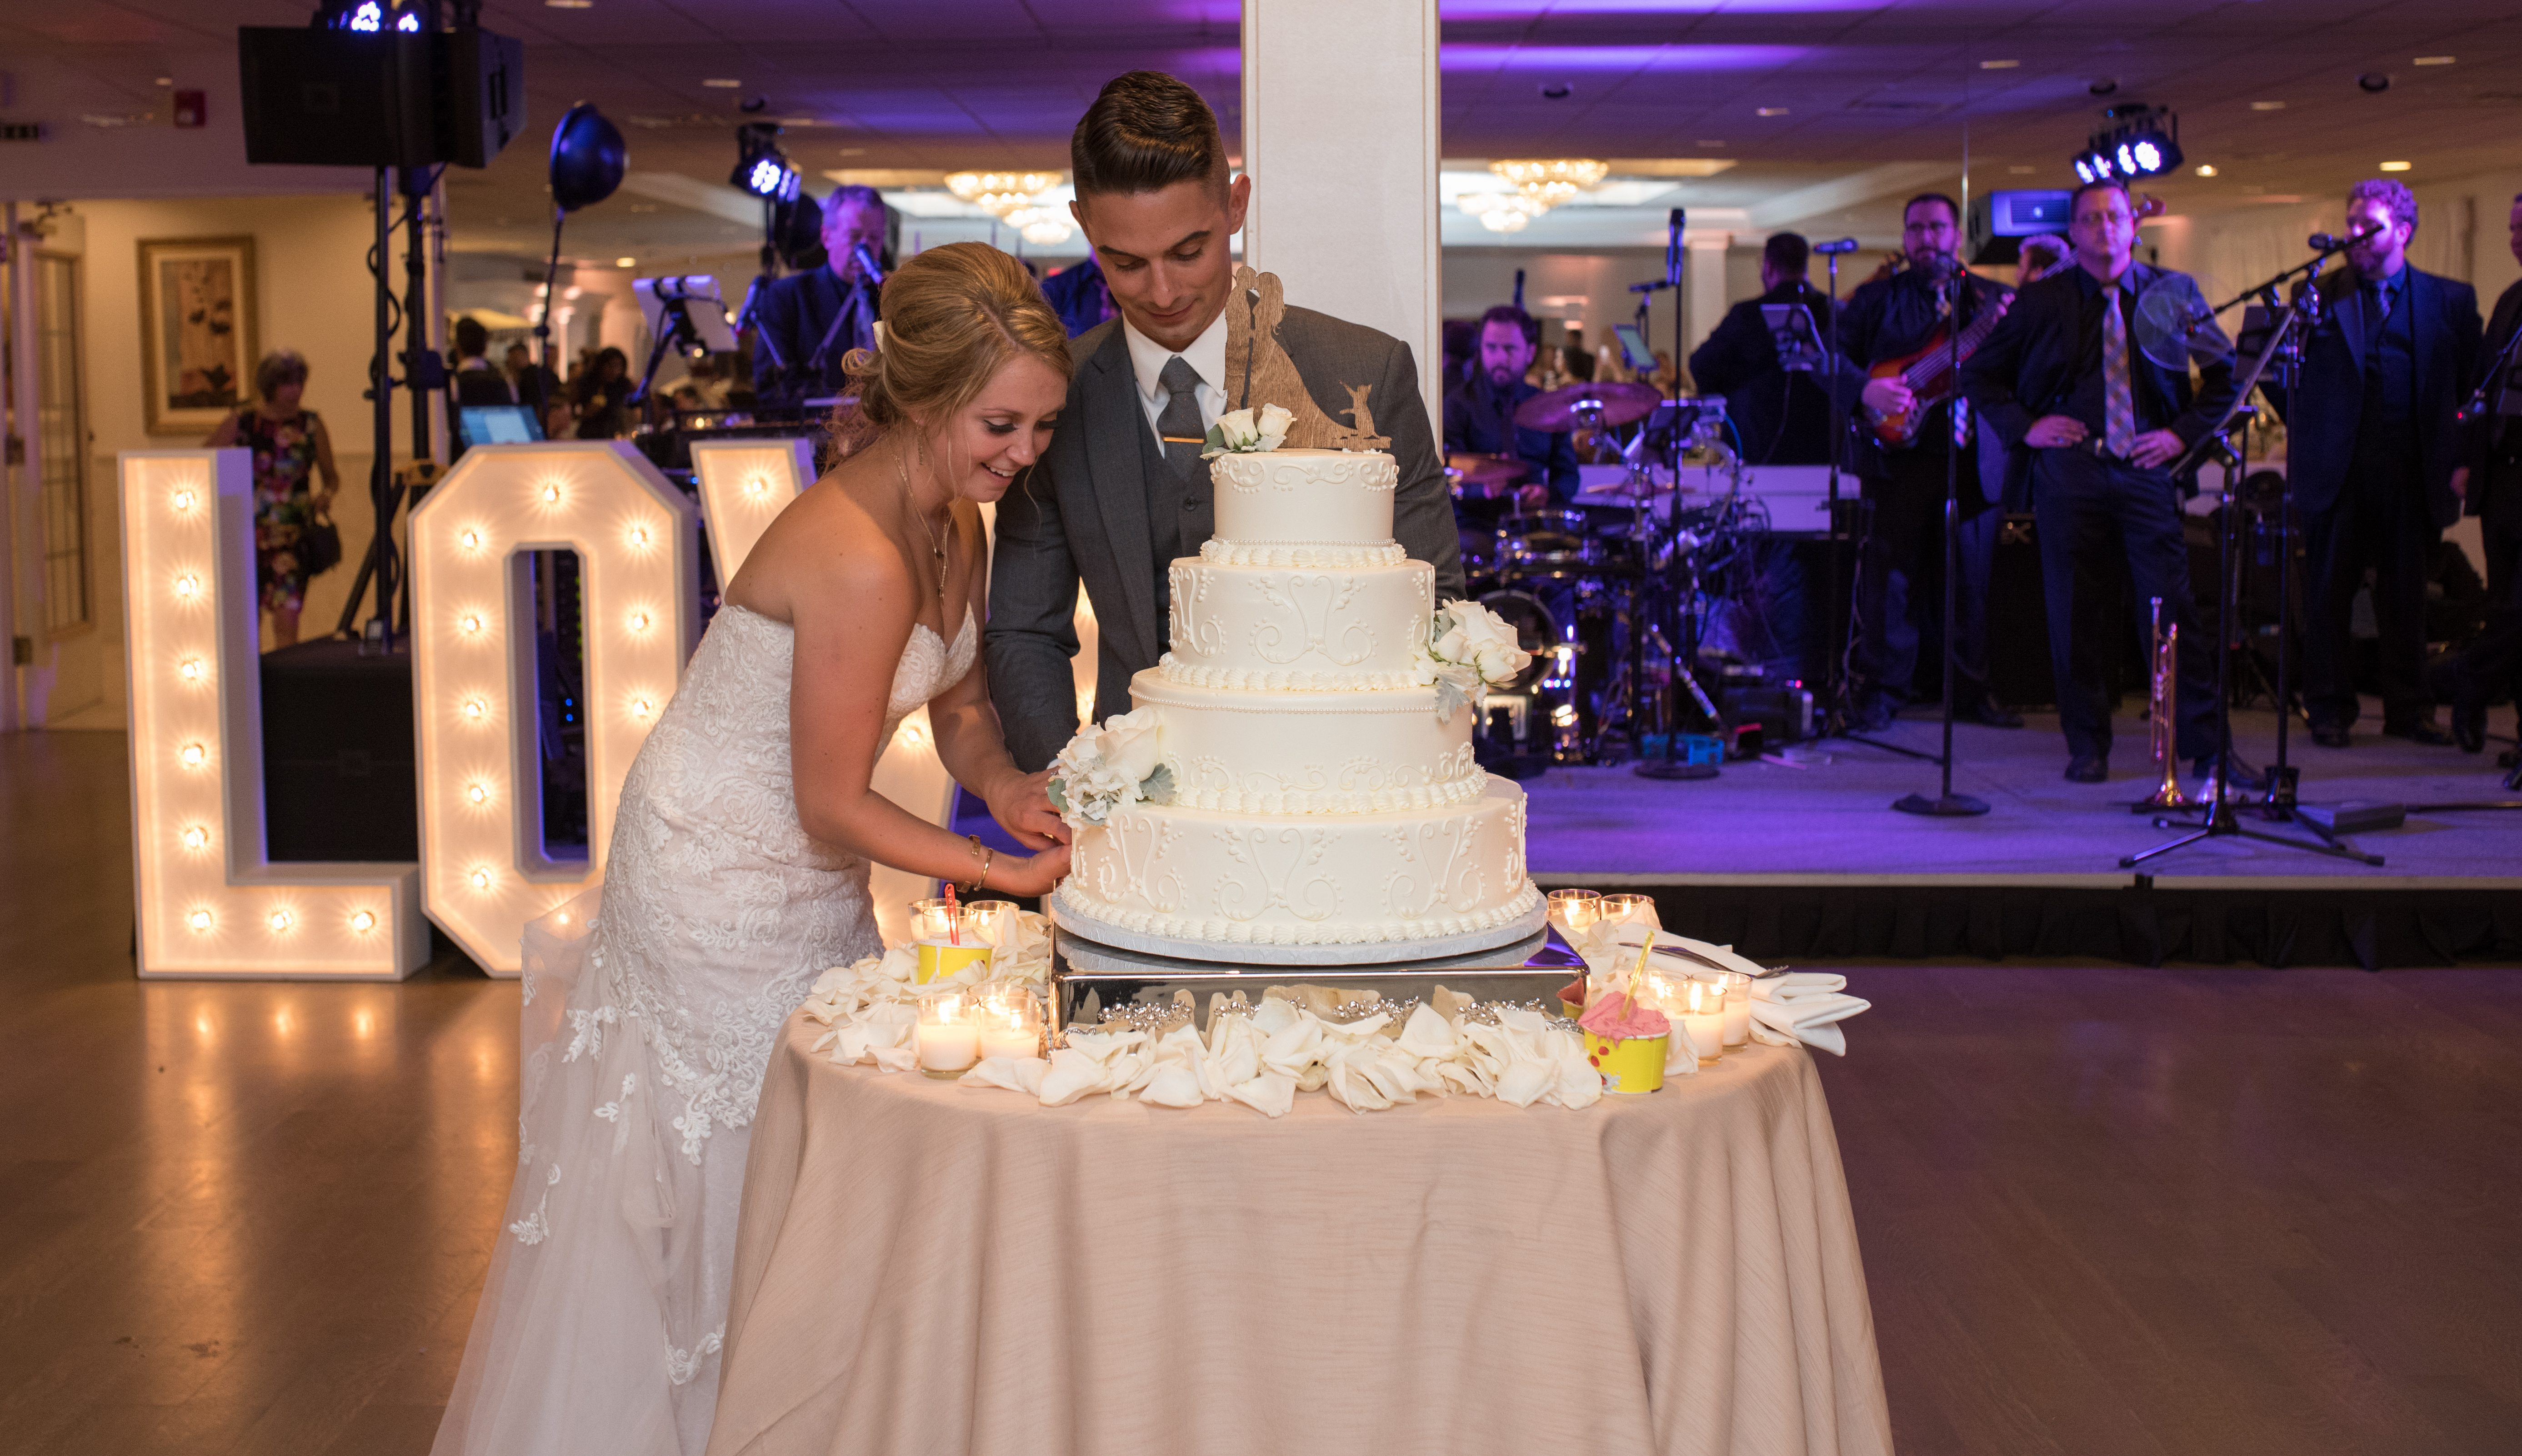 Matt and Elyse cut their wedding cake during their summer wedding